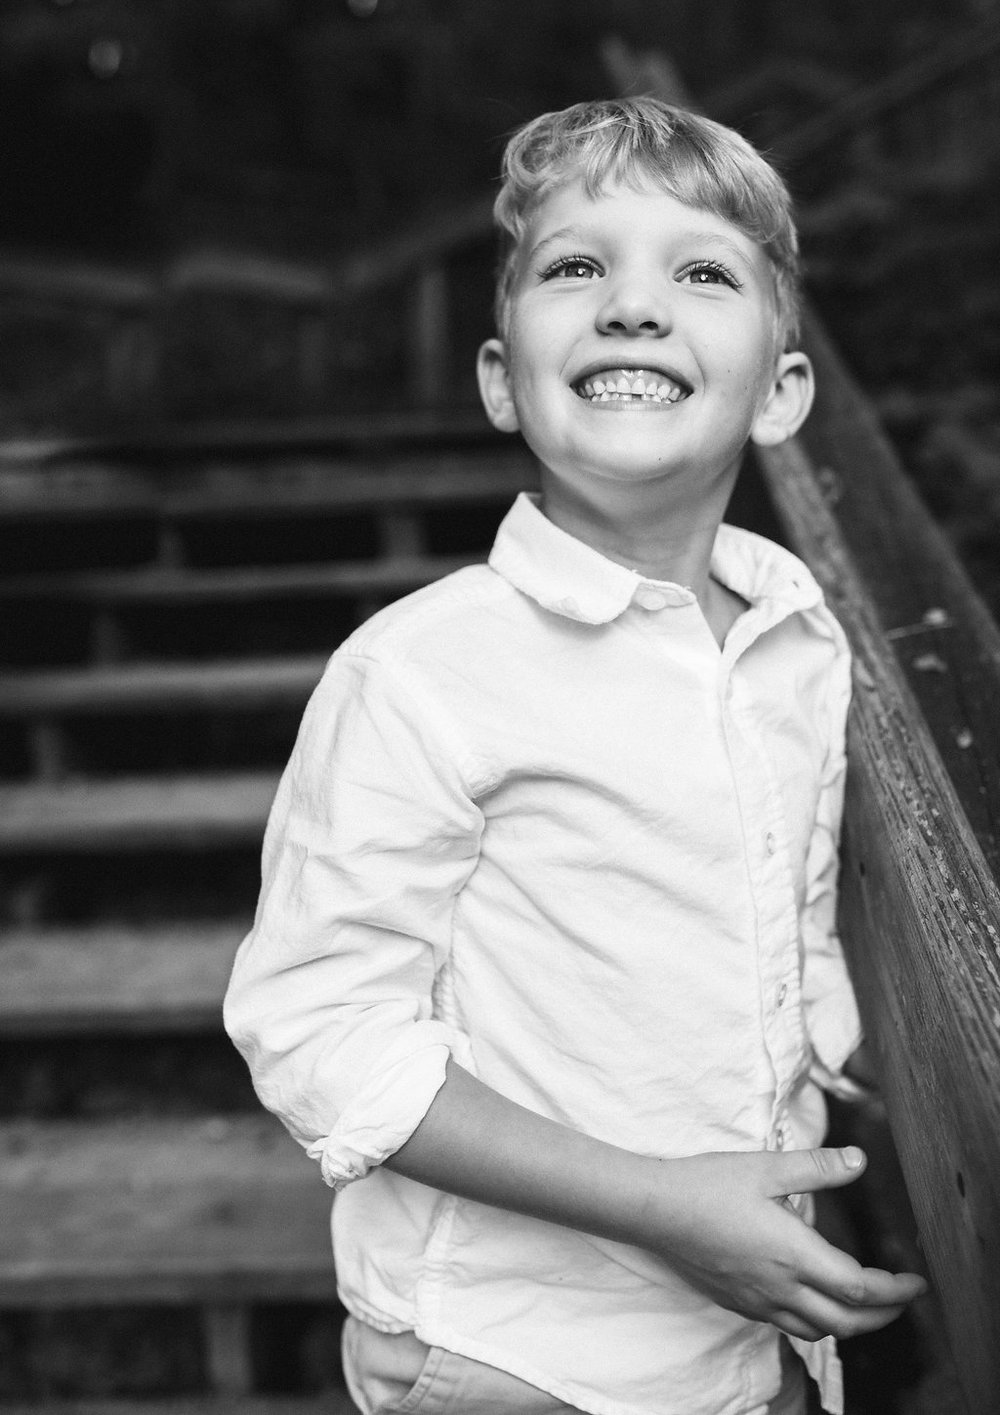 Big smile - child photographer Rochester Michigan